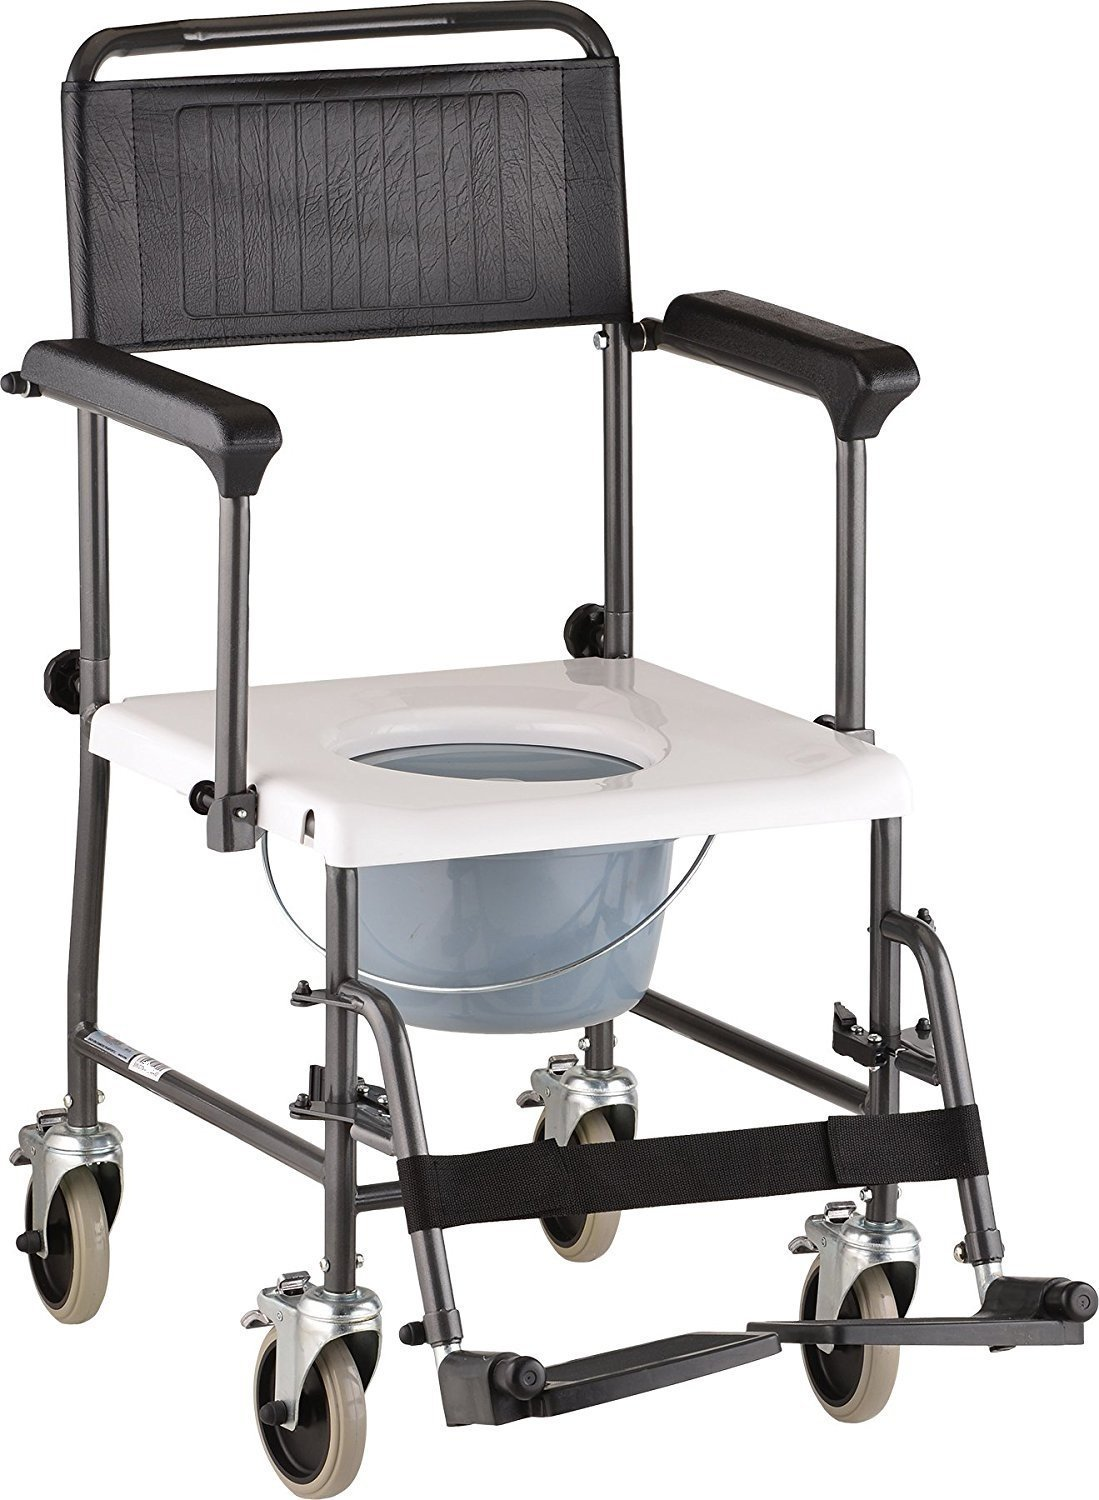 Transport Chair and Commode, Rolling Transport Chair with Footrests- Mobility Aid for Adult, Senior, Elderly & Handicap - Aluminum Transport Chair by CareMax